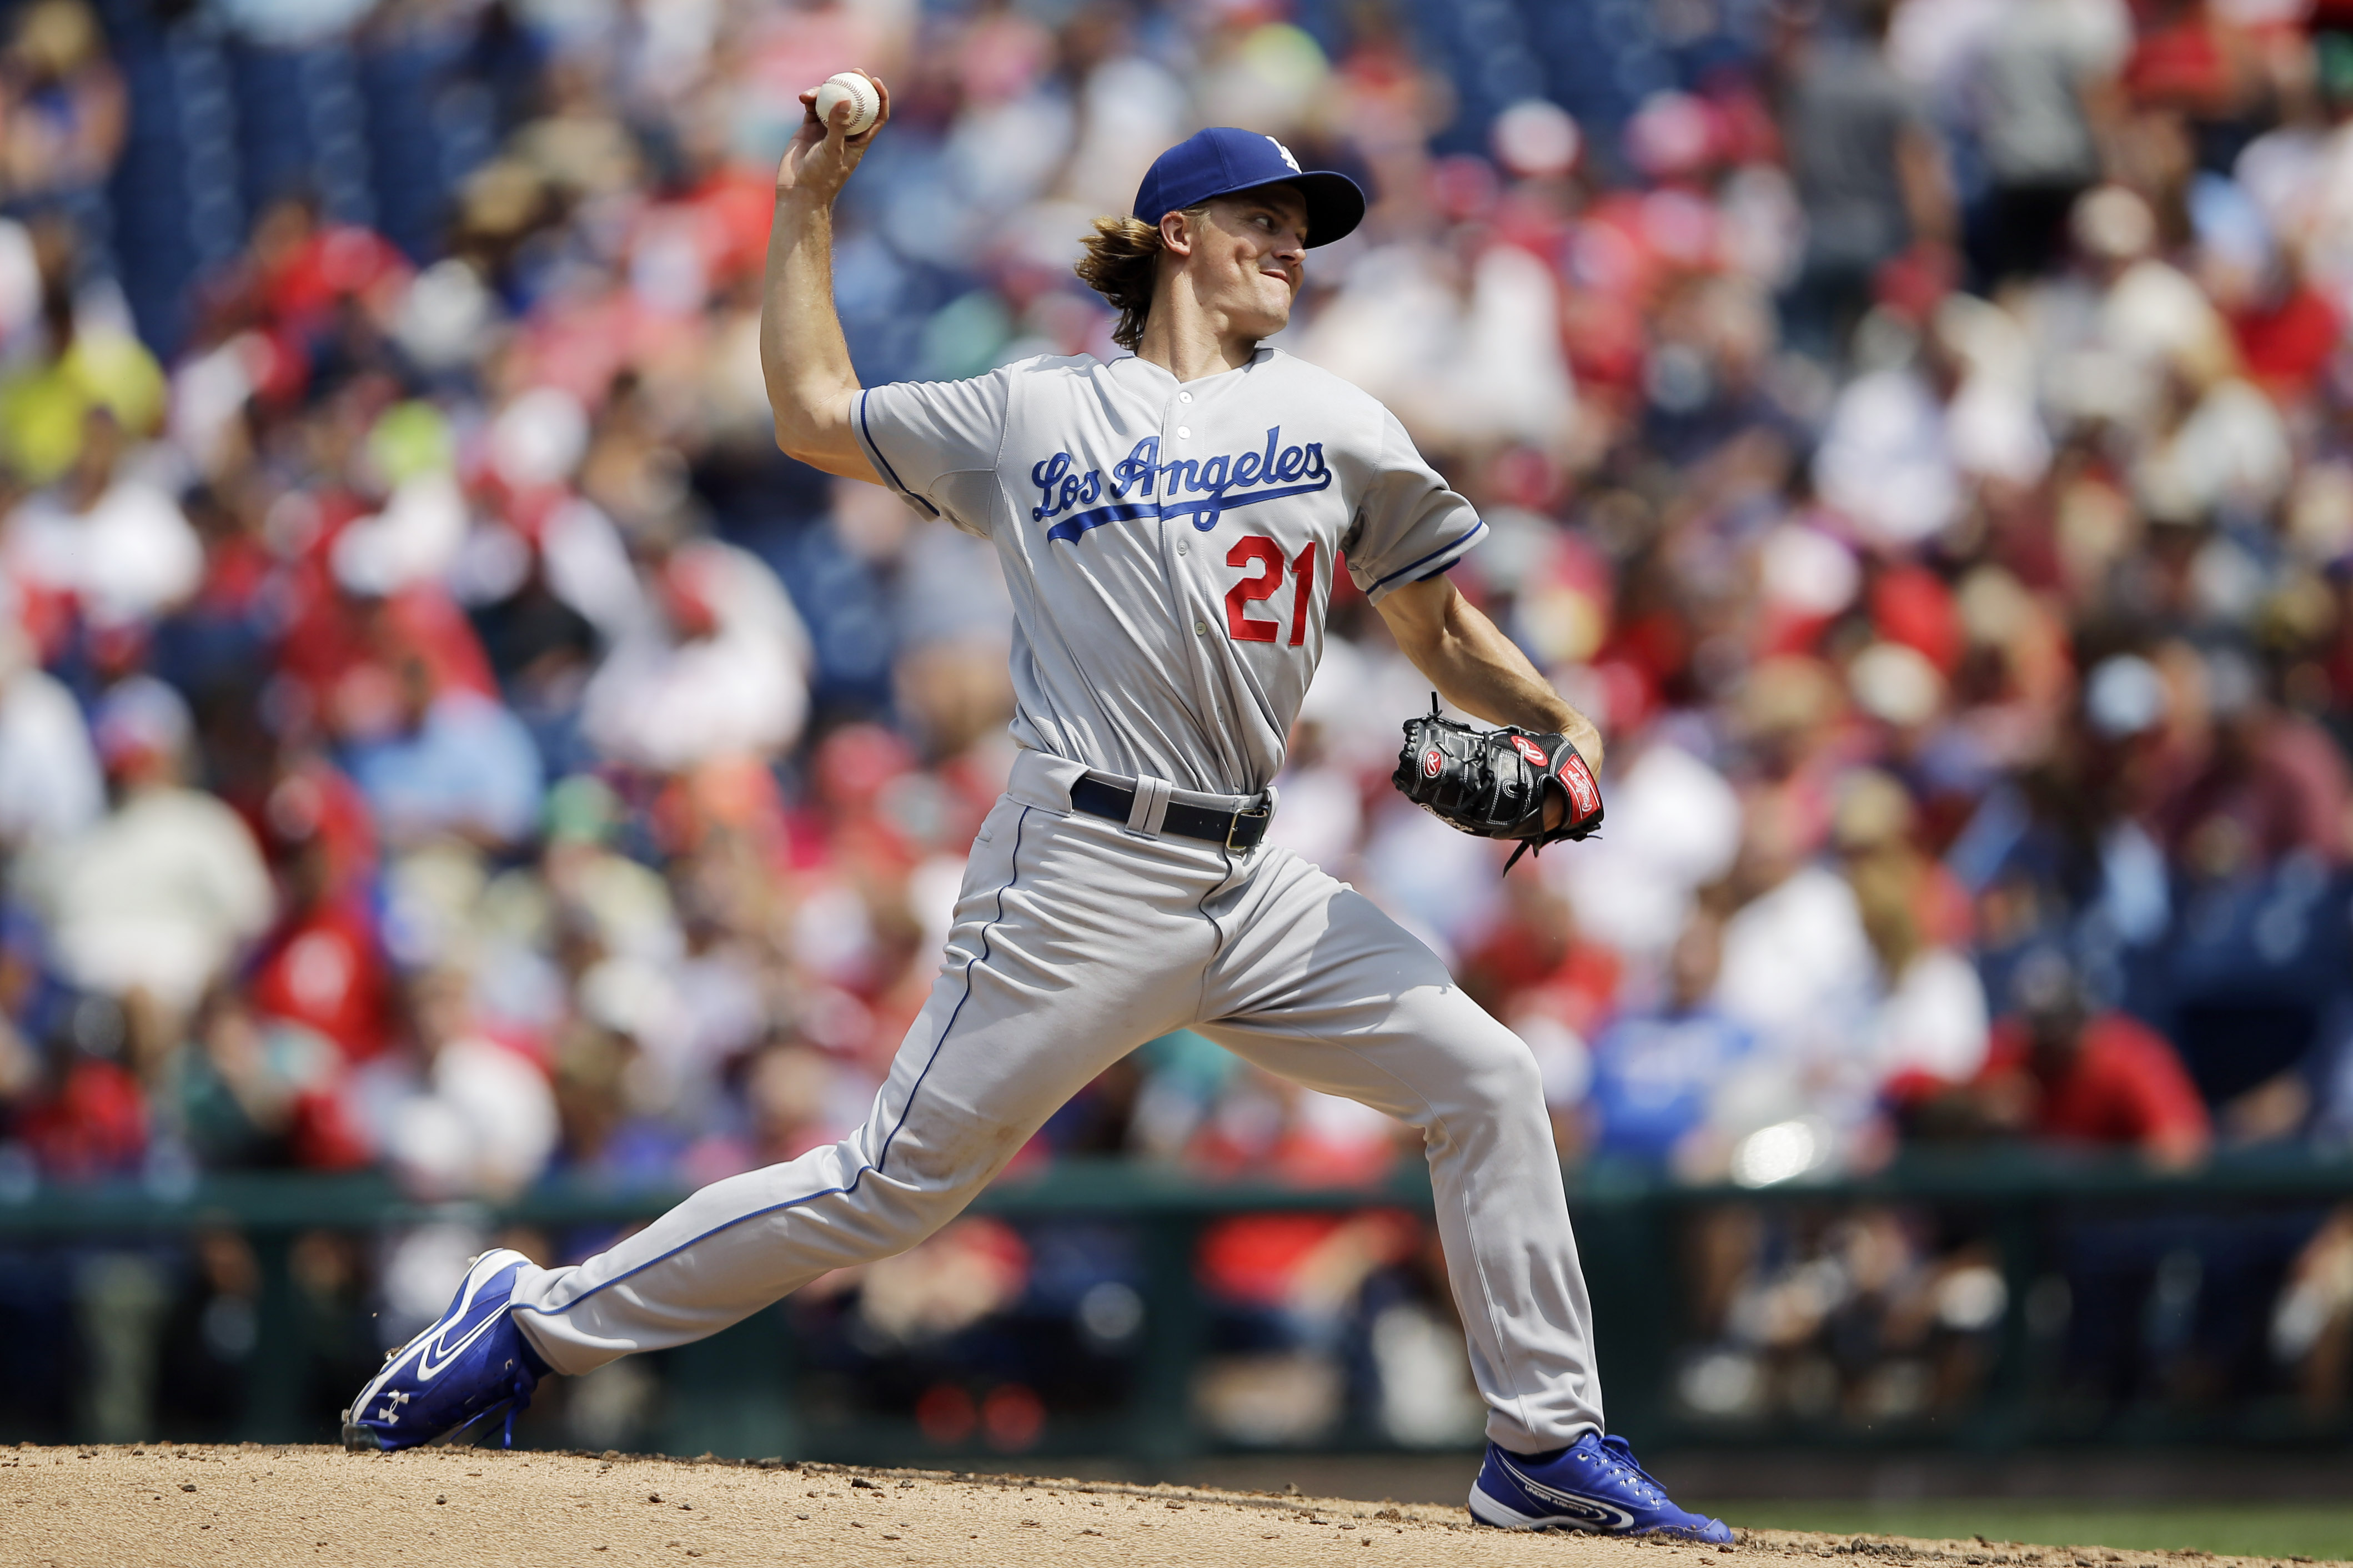 Los Angeles Dodgers' Zack Greinke pitches during the second inning of a baseball game against the Philadelphia Phillies, Thursday, Aug. 6, 2015, in Philadelphia. (AP Photo/Matt Slocum)